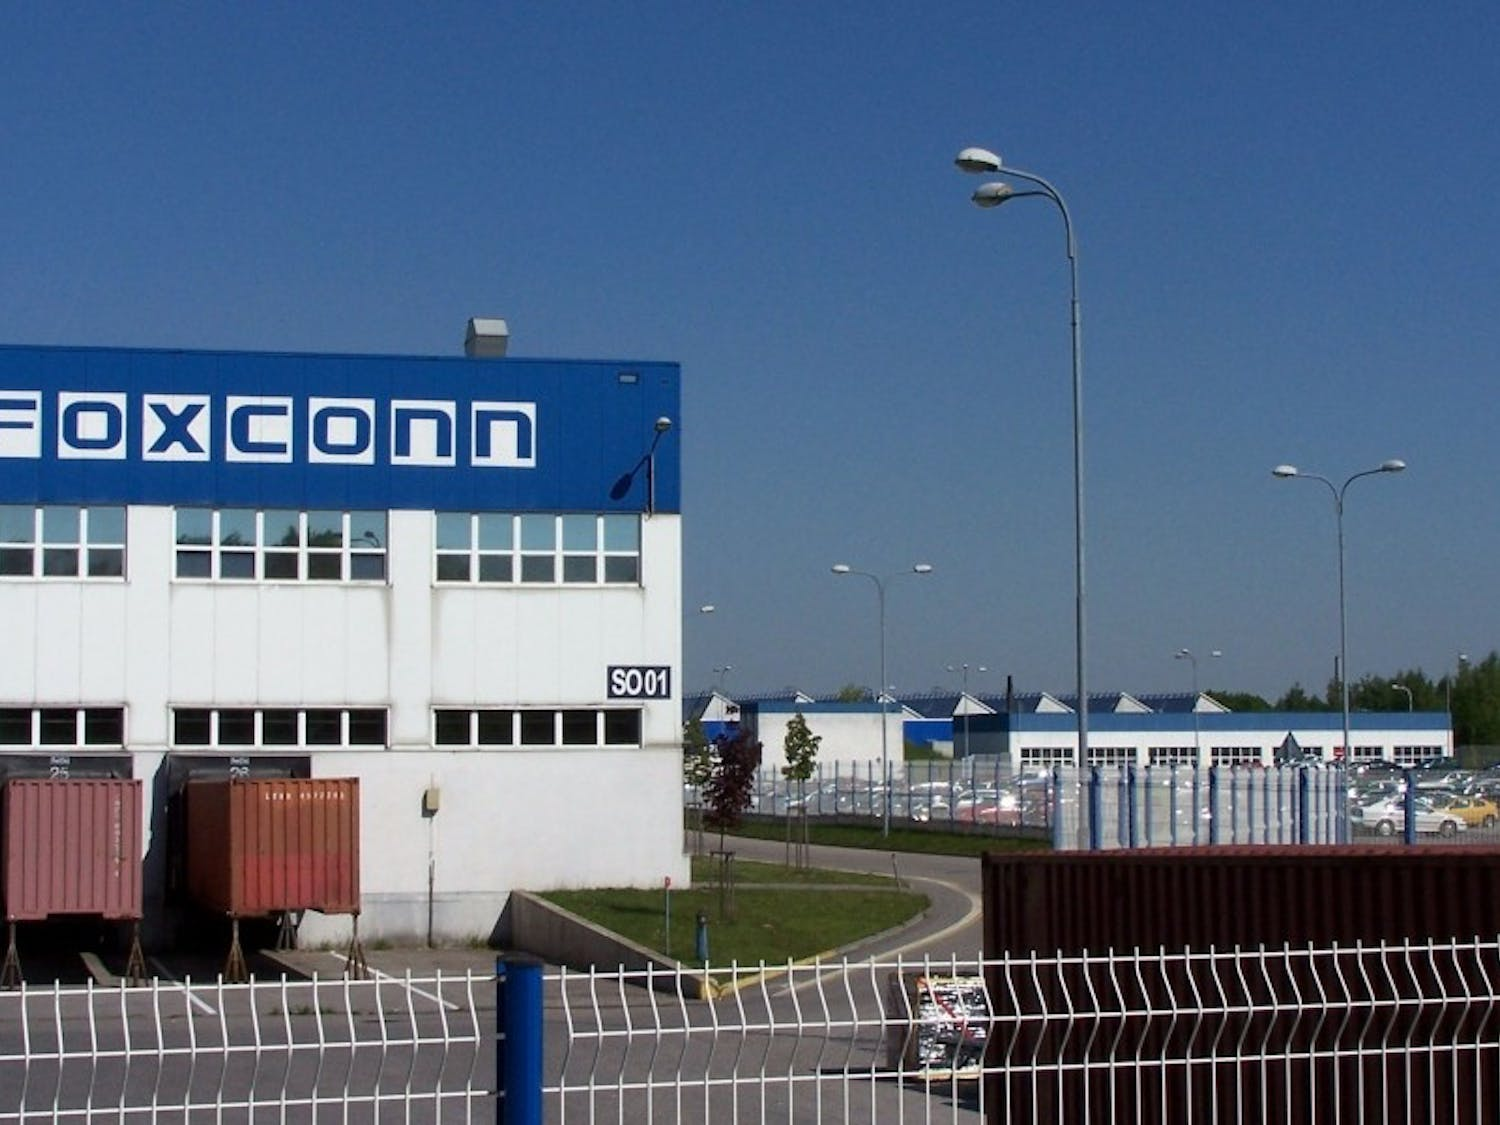 Critics see potential of downfall in Foxconn, UW-Madison partnership